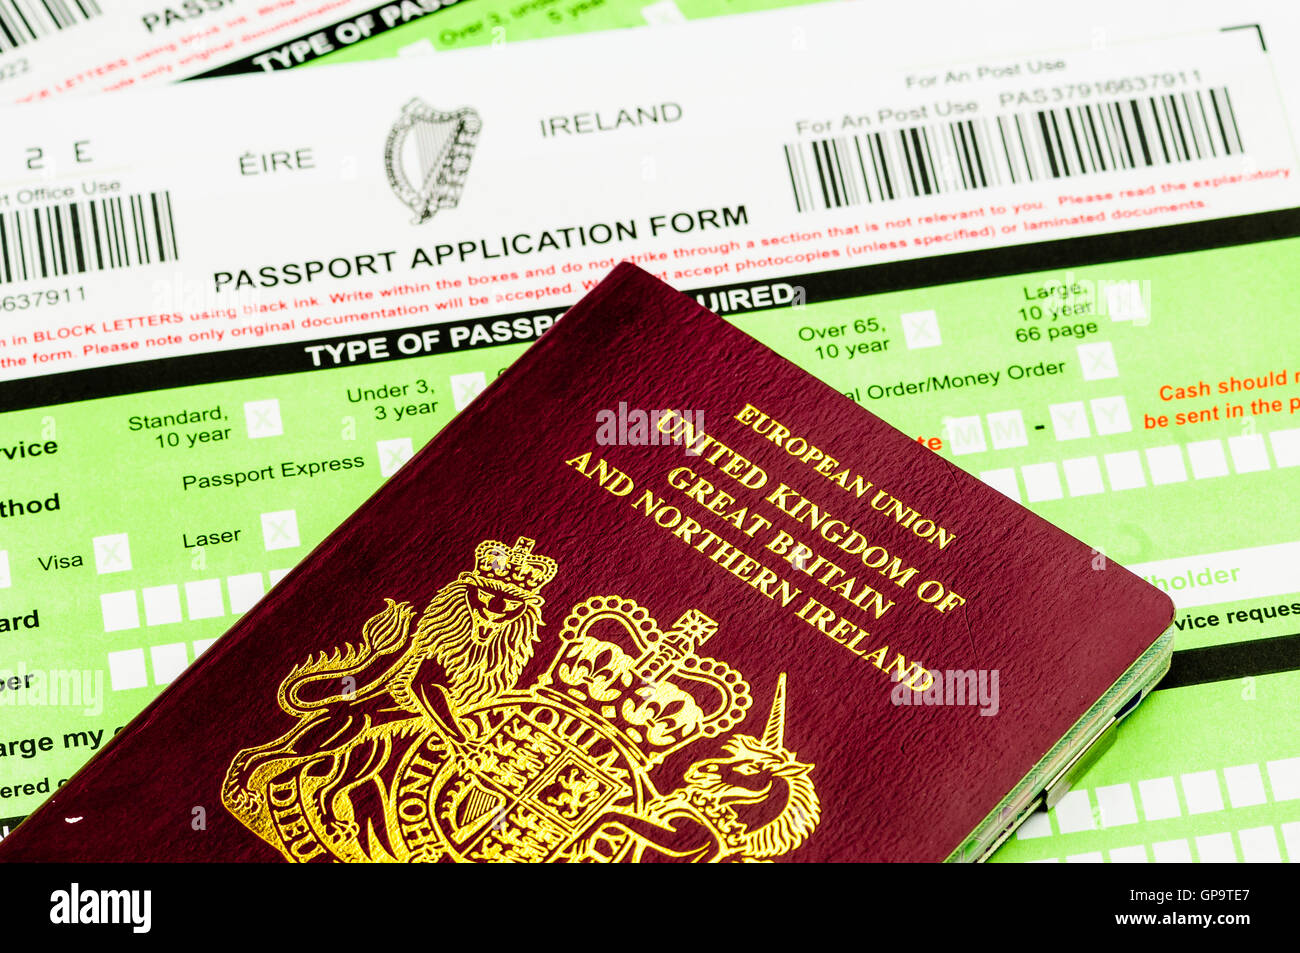 People born in Northern Ireland are entitled to dual citizenship of both Republic of Ireland (Eire), and United - Stock Image